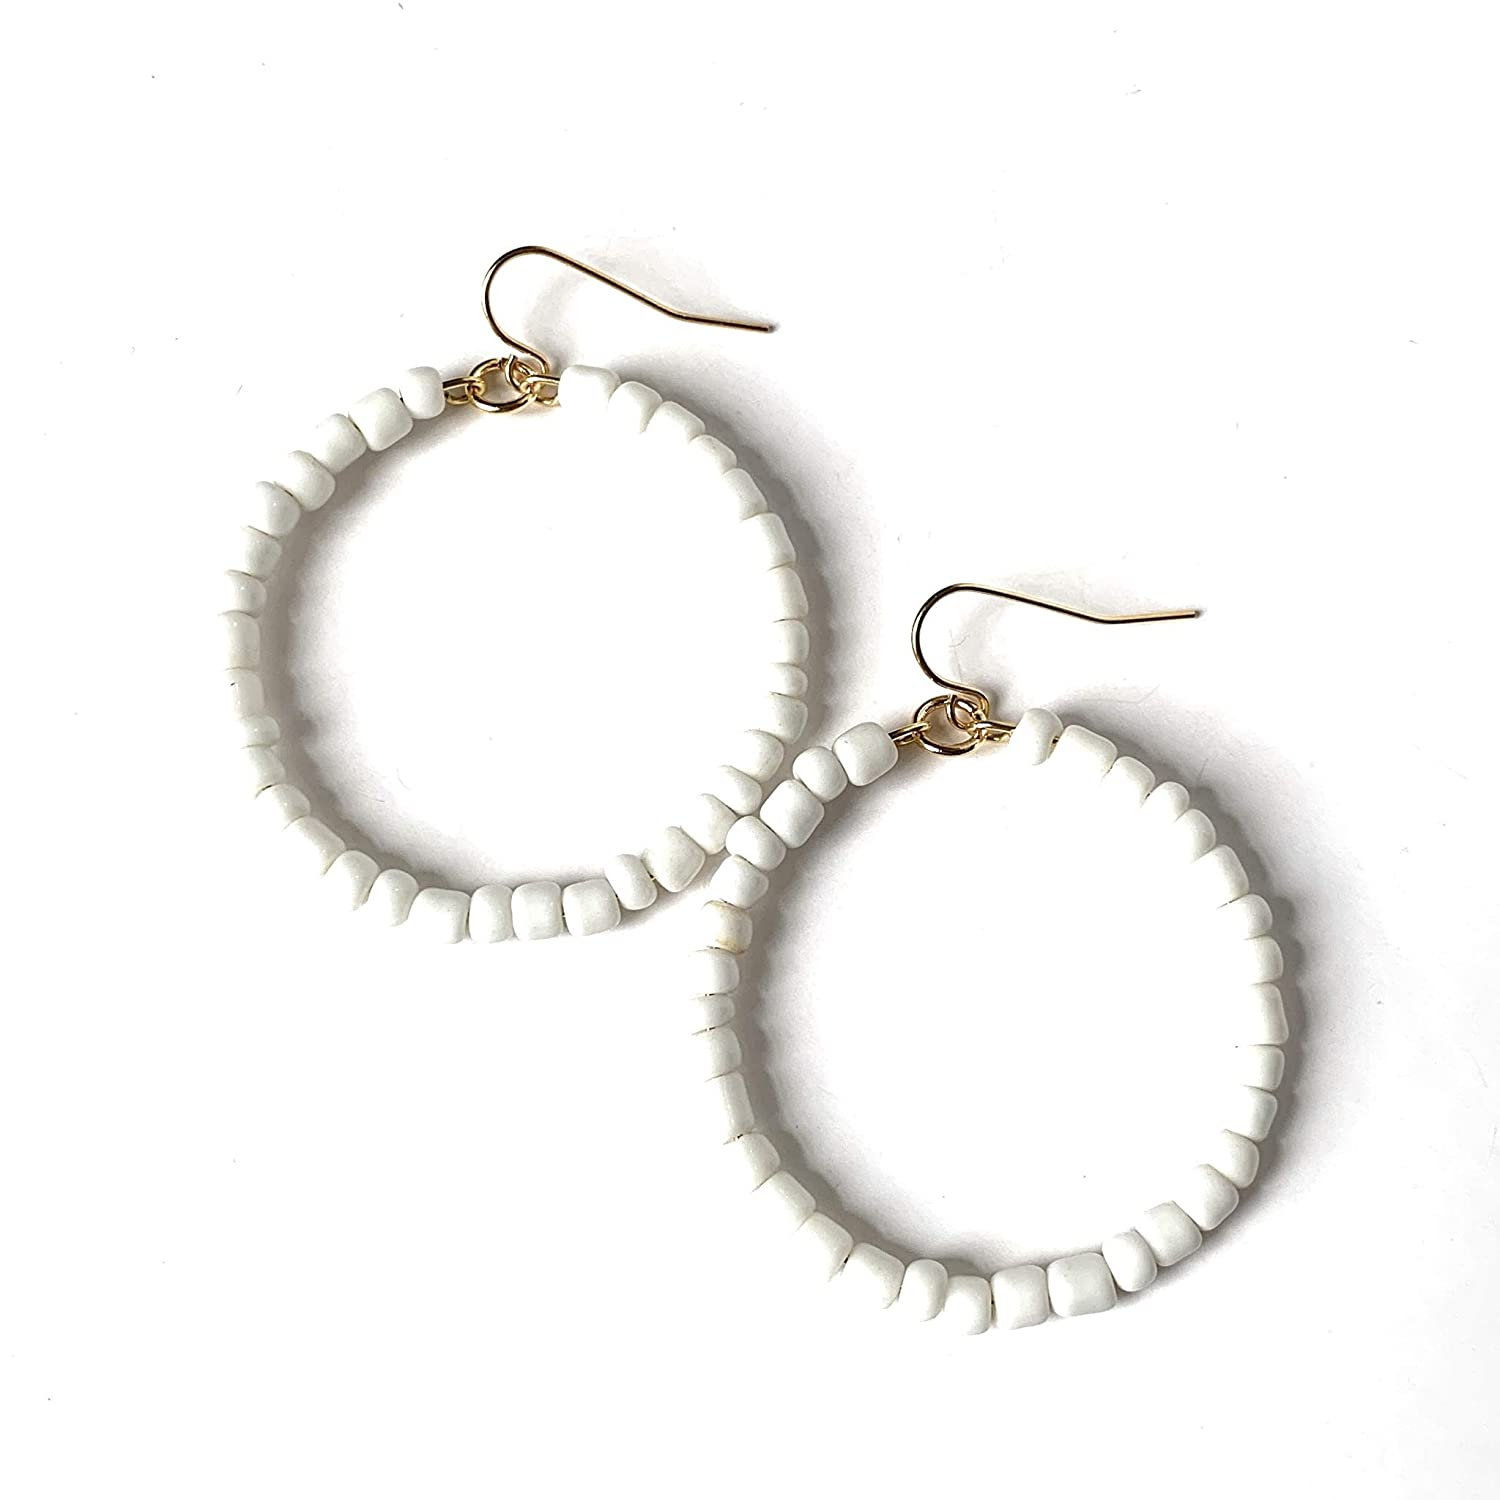 Beaded Hoop Earrings Women for White Limited time Max 59% OFF sale